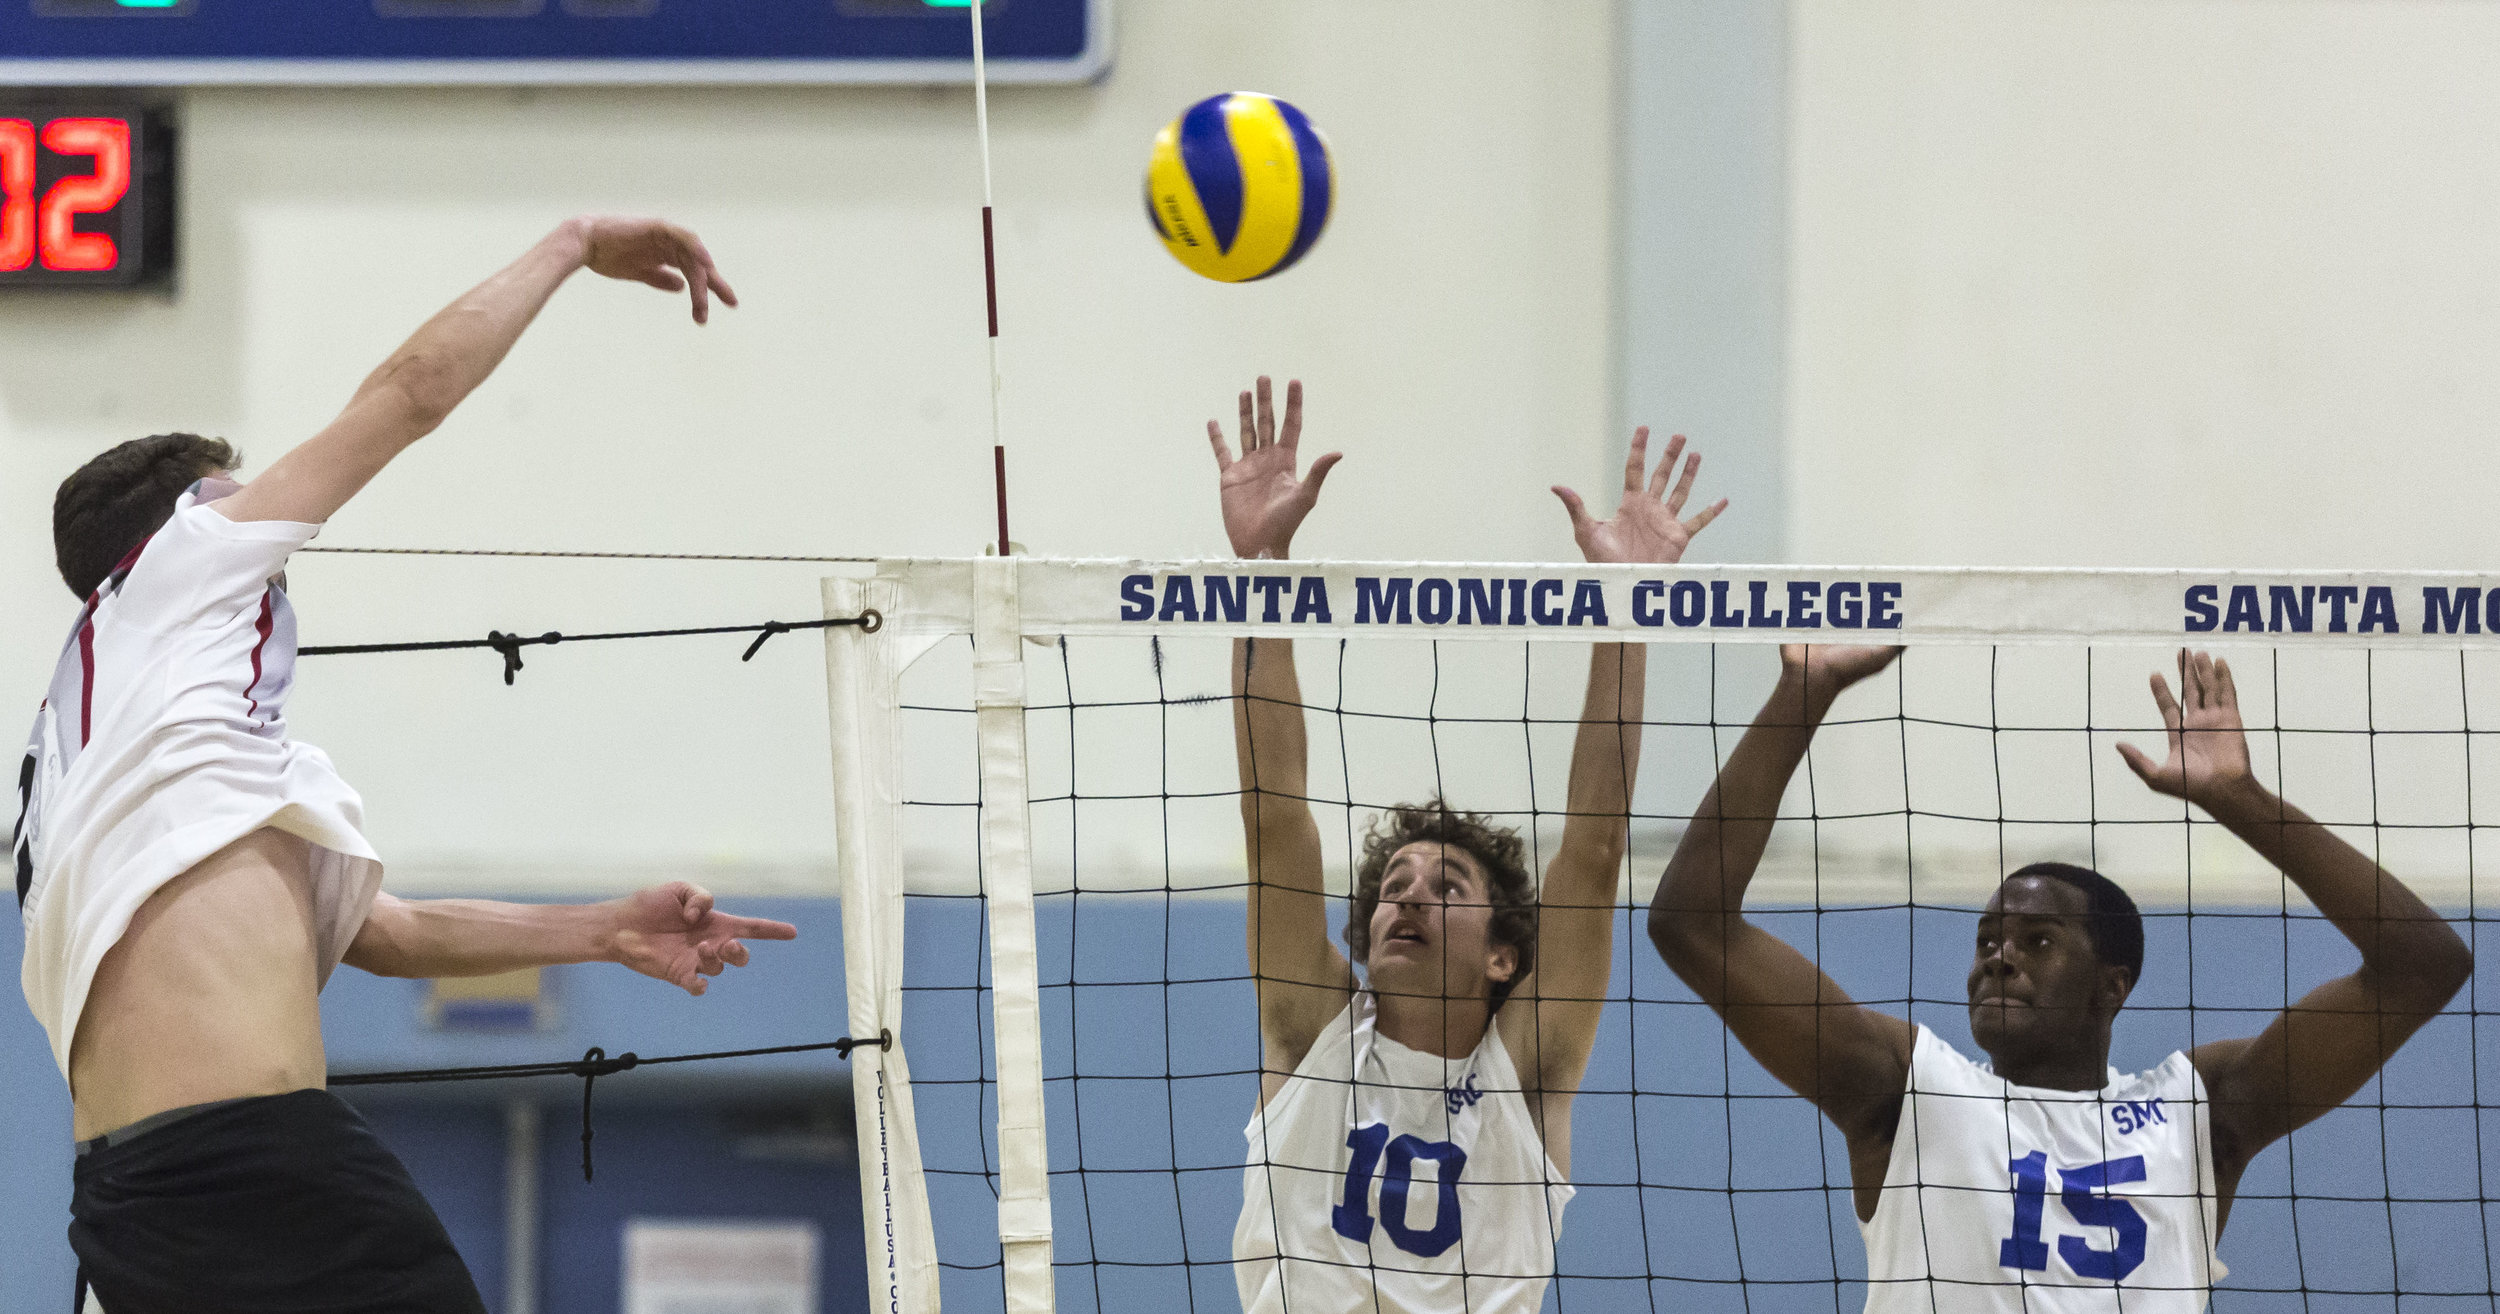 Pierce College Brahma freshmen opposite-hitter Trenton Sellers (2, left) powerfully spikes the ball into the Corsair defense as Santa Monica College Corsair freshmen right-side hitter Shane Stocklos (10, middle-right) and Santa Monica College Corsair freshman middle hitter Vecas Lewin (15, right) attempt to block it in the Santa Monica College gymnasium in Santa Monica Calif., on Friday, April 21 2017. The Corsairs however would go on to win the game 3-2, which would allow the Corsairs to advance to the second round of the CCCAA playoffs. (Corsair Photo: Matthew Martin)